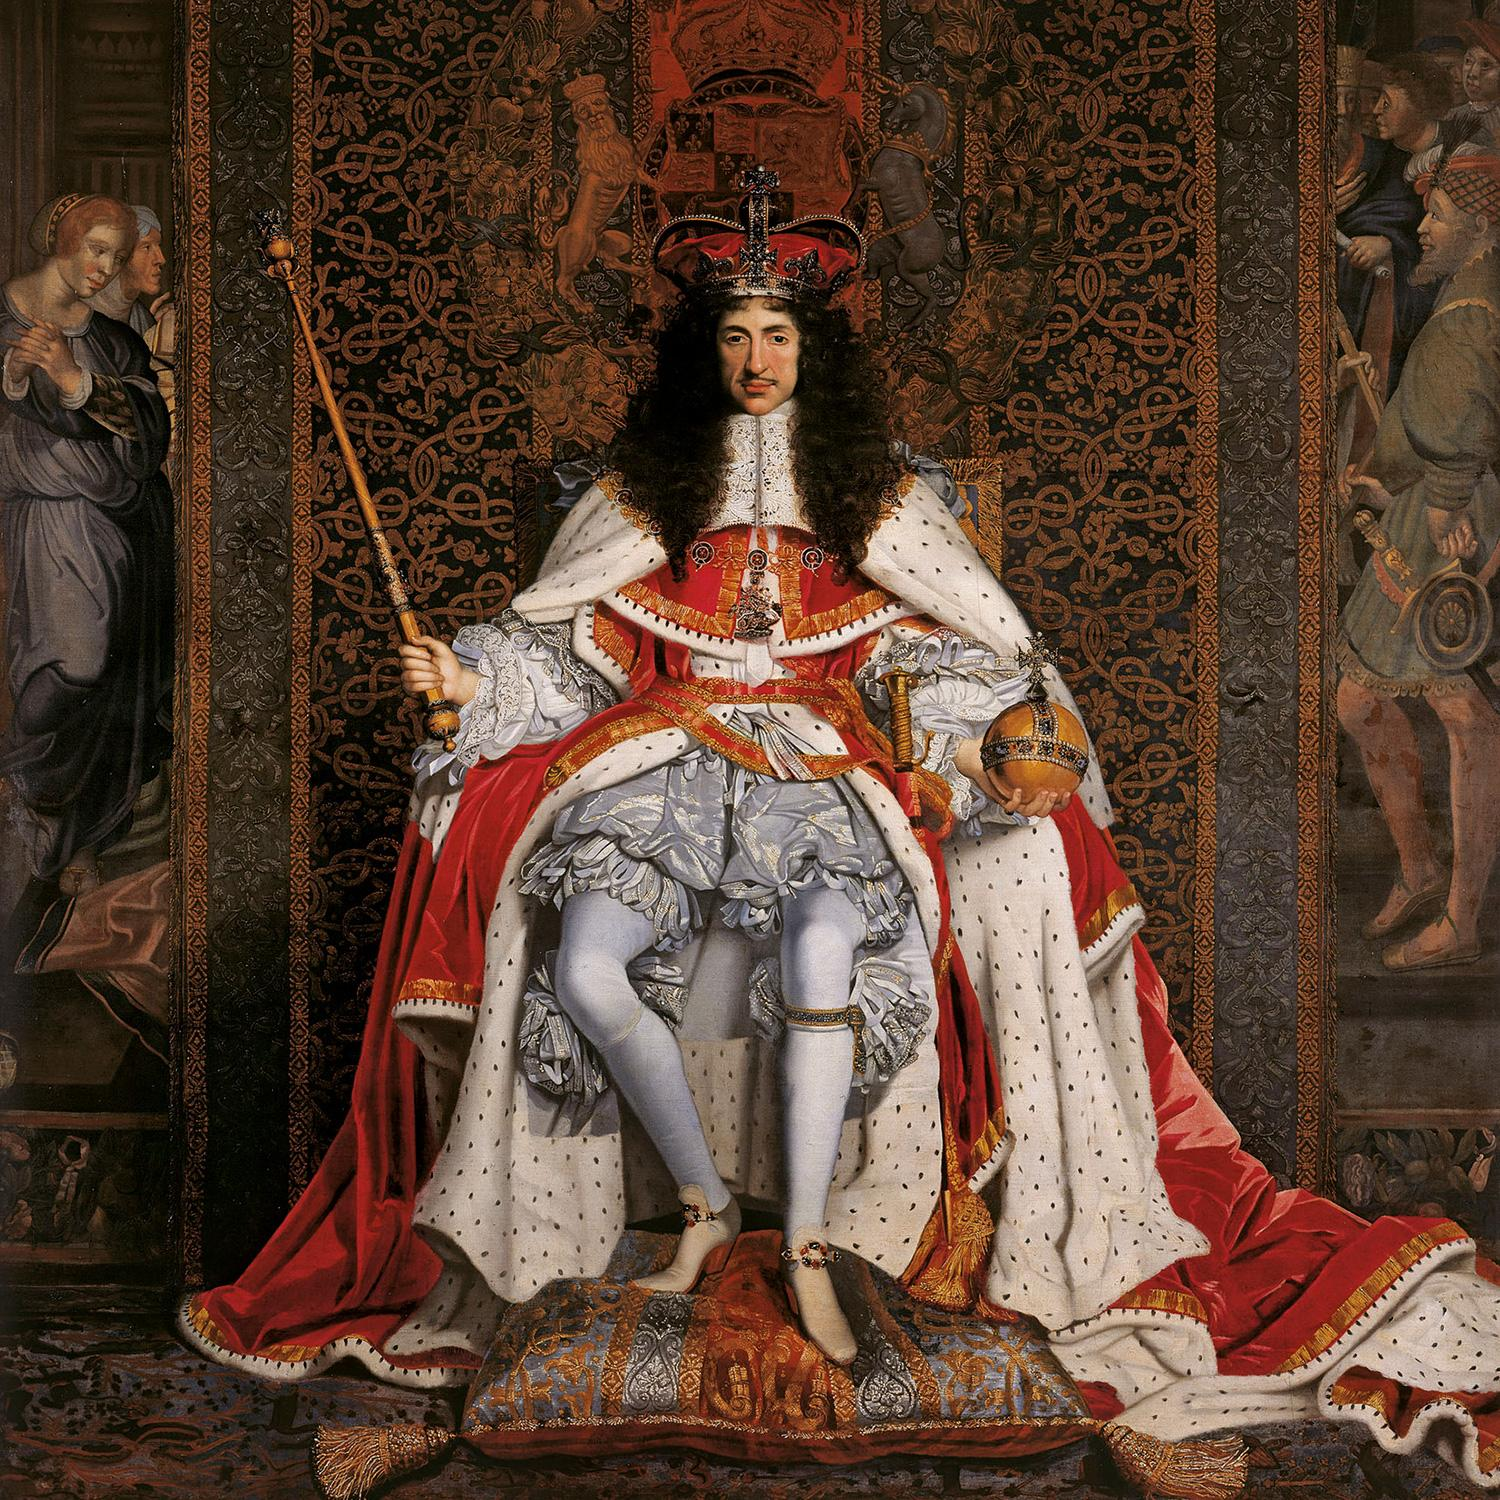 Charles ii of england in coronation robes 1